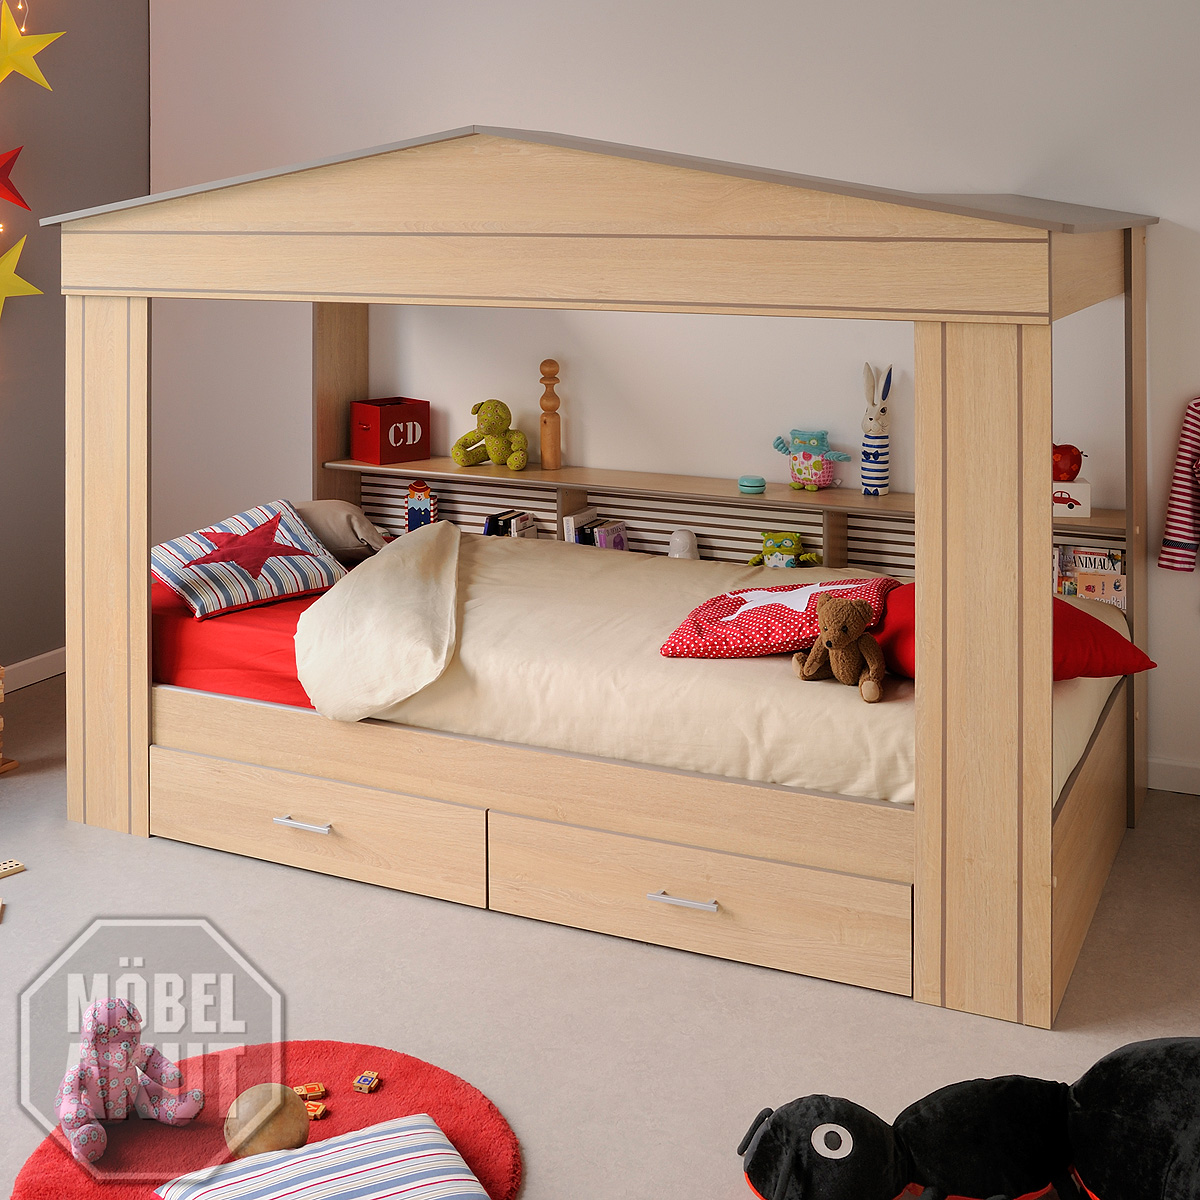 kinderbett mini casa bett kinderzimmerbett in hausbett in. Black Bedroom Furniture Sets. Home Design Ideas